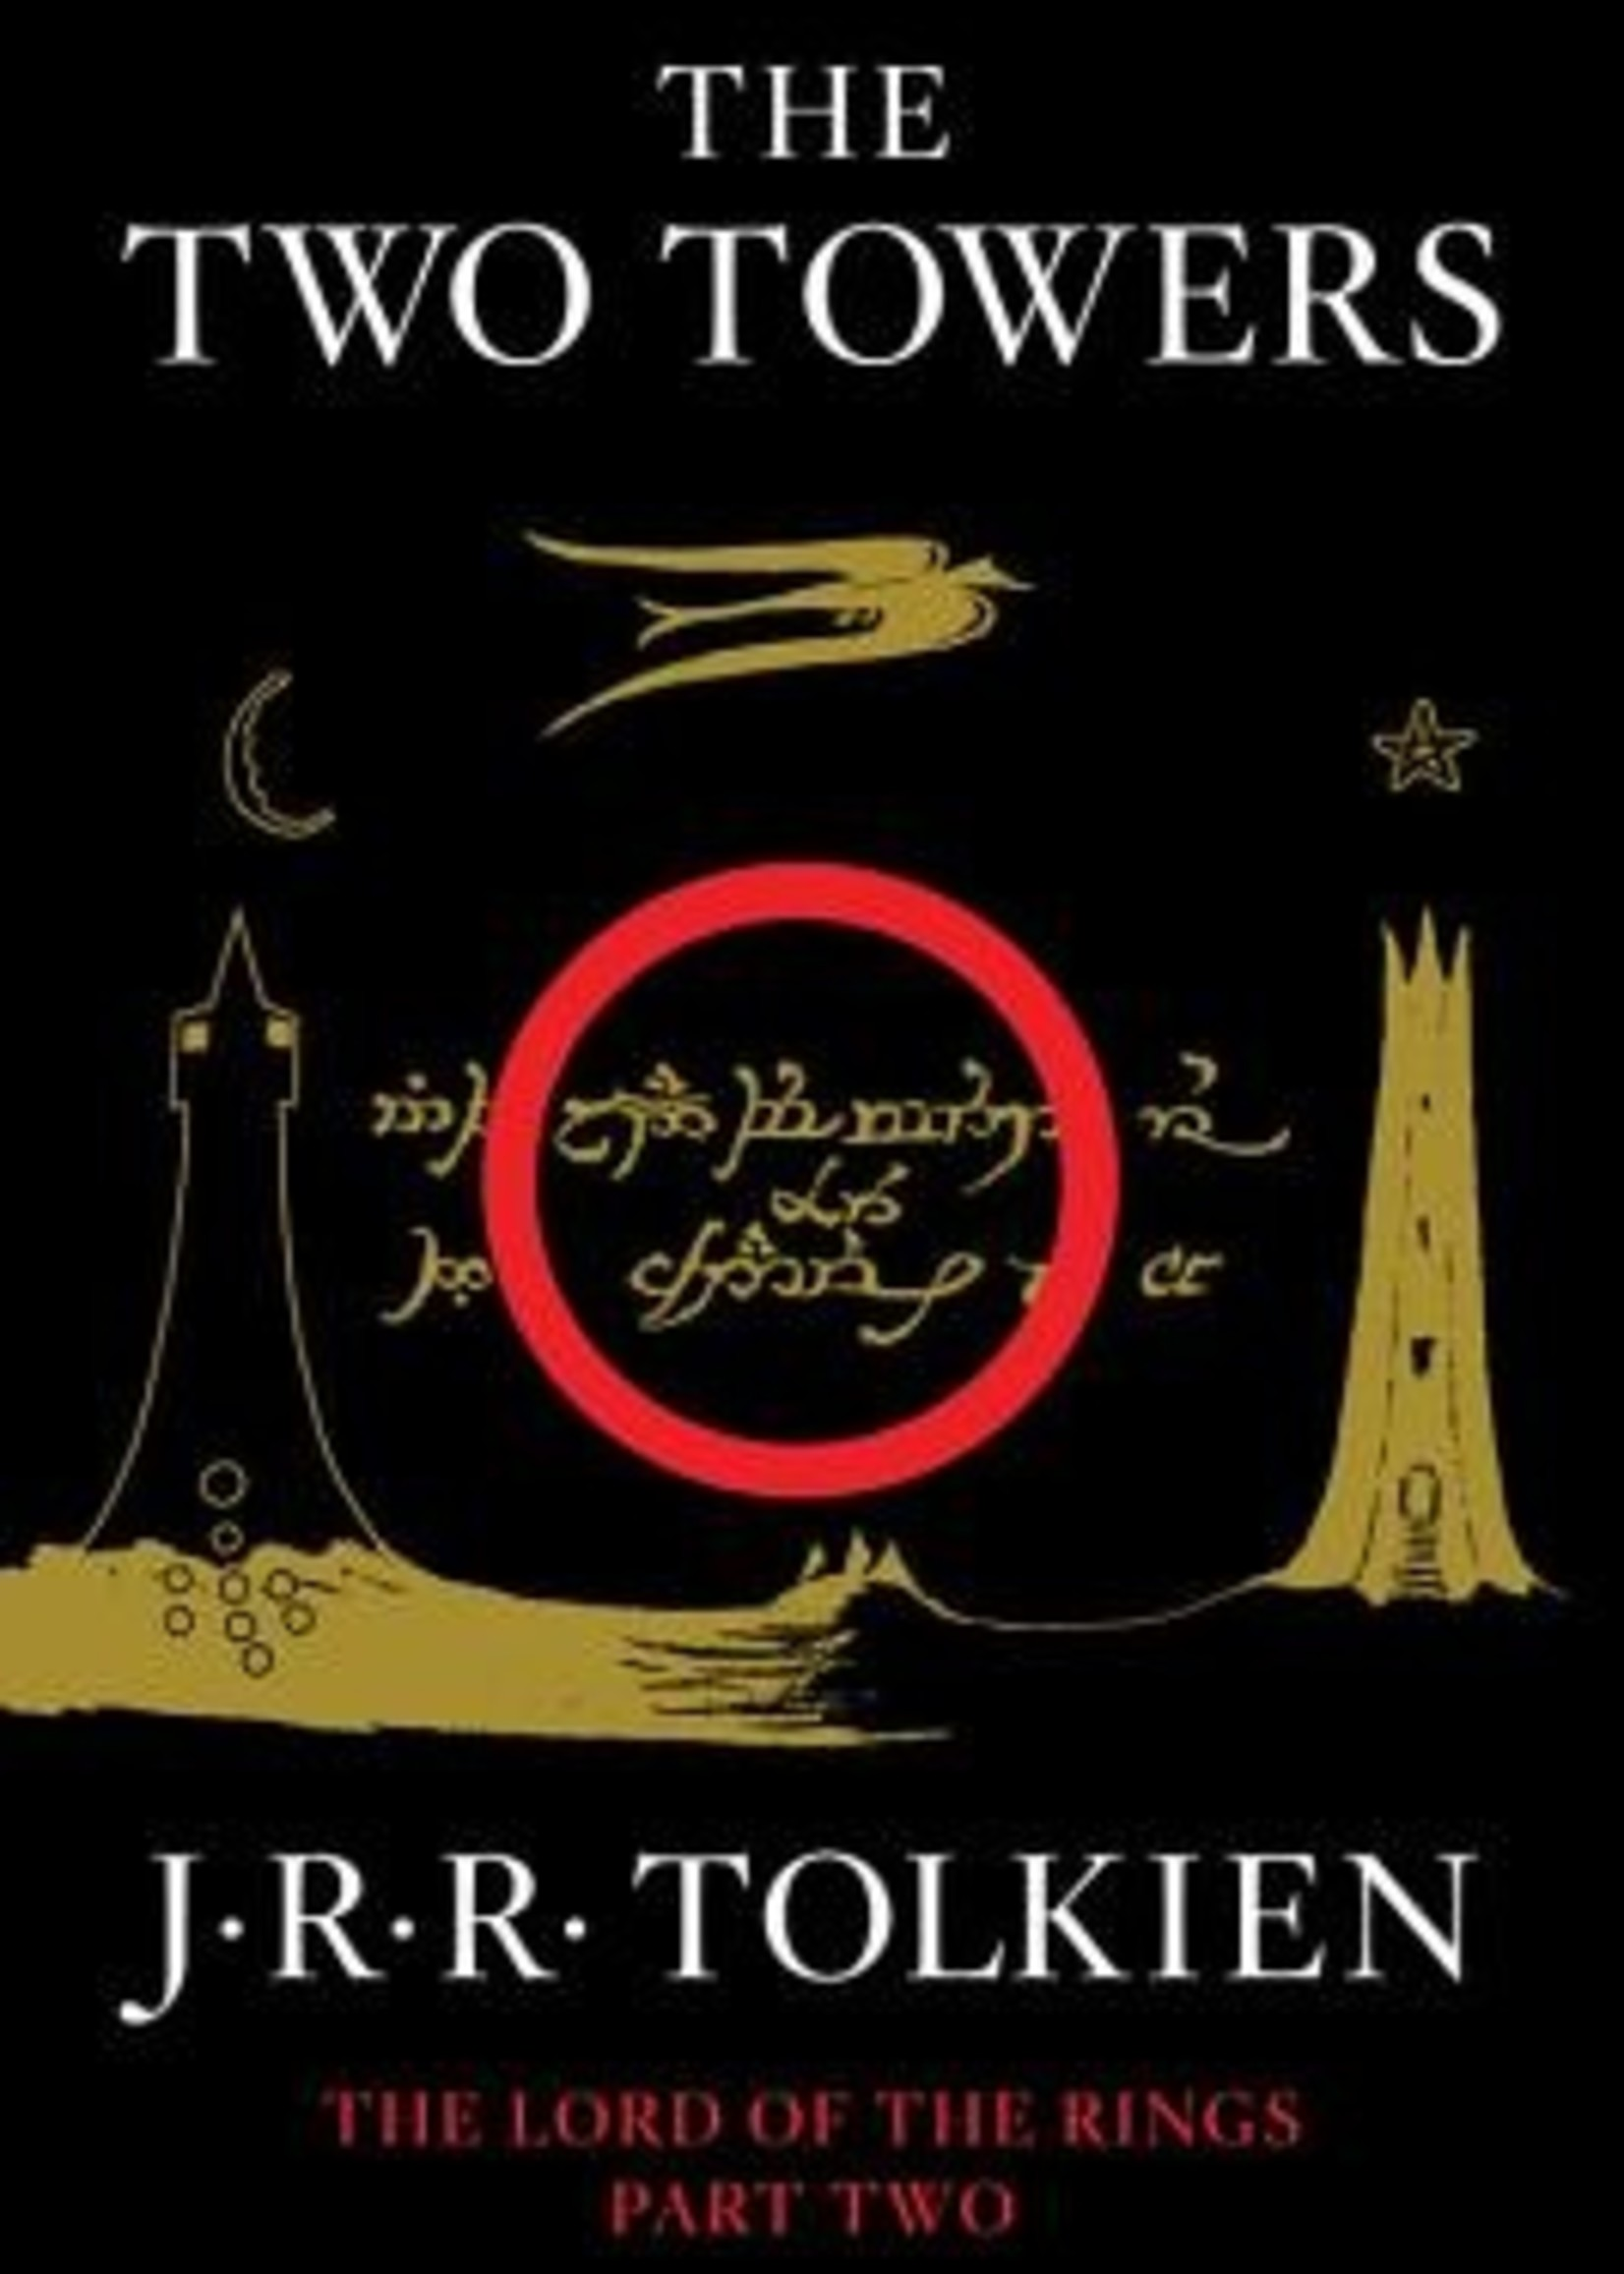 Lord of the Rings #02, The Two Towers - Paperback